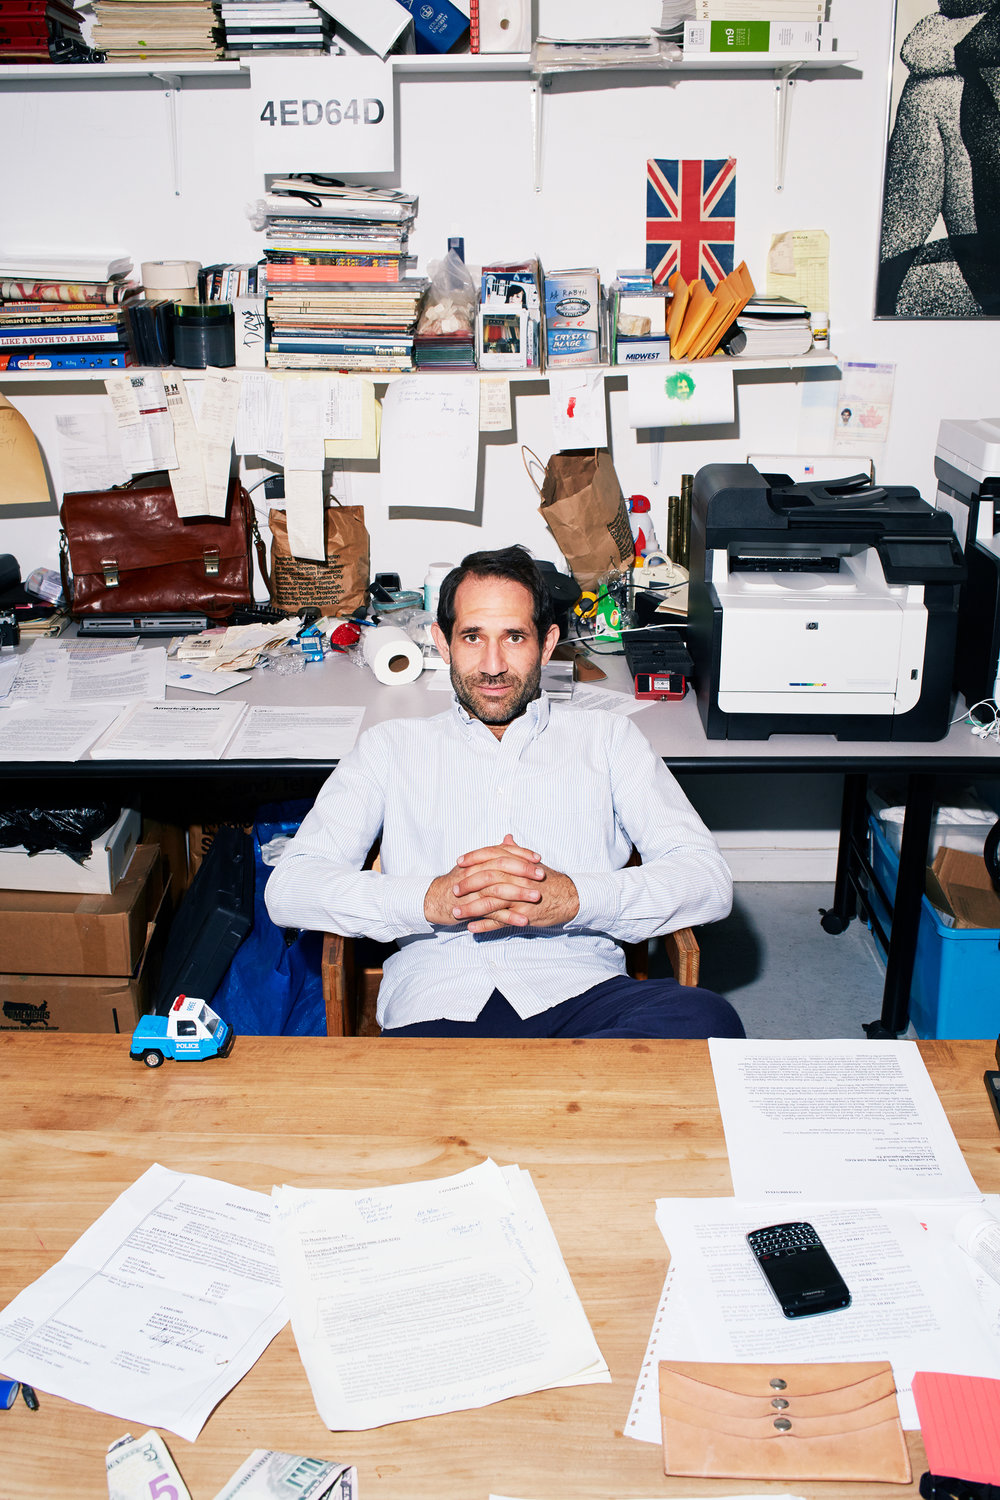 KATE OWEN | DOV CHARNEY // THE FINANCIAL TIMES